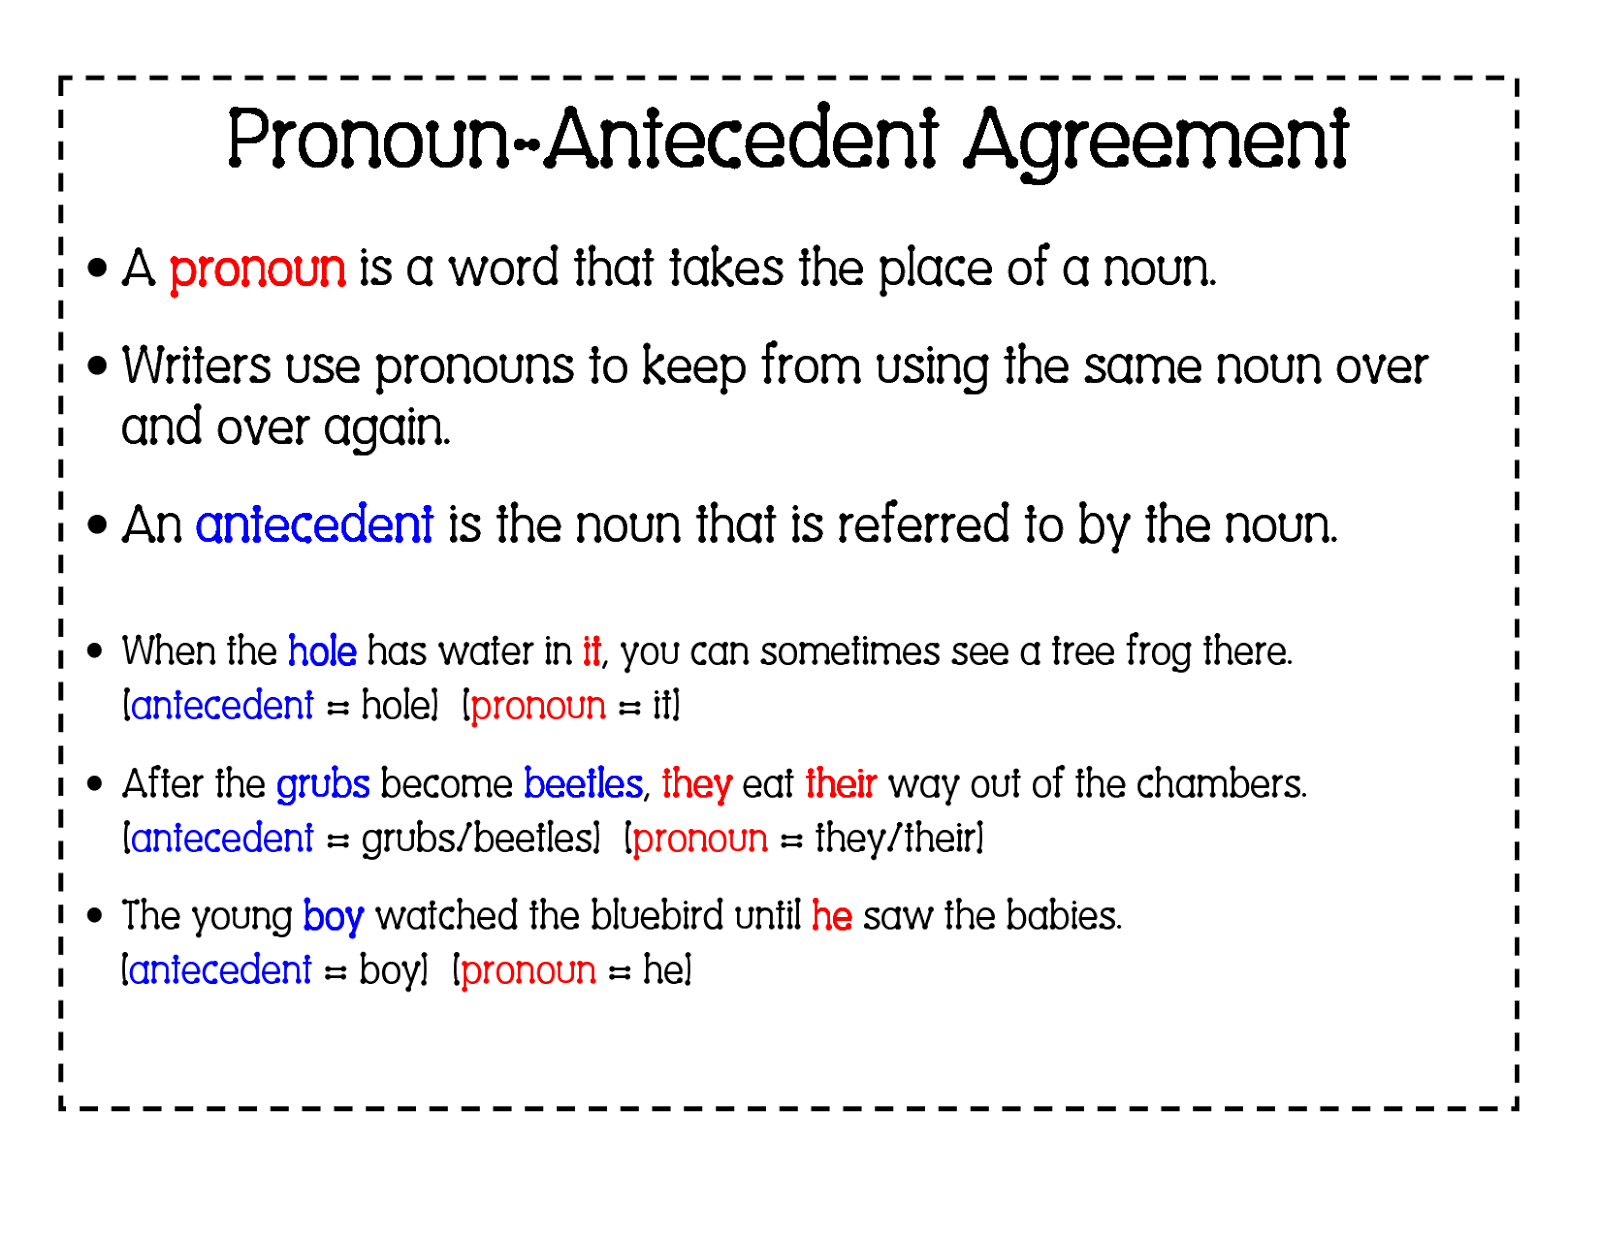 Worksheets Pronouns And Antecedents Worksheet pronouns lessons tes teach 6th grade english with mr t pronoun antecedent agreement part 2